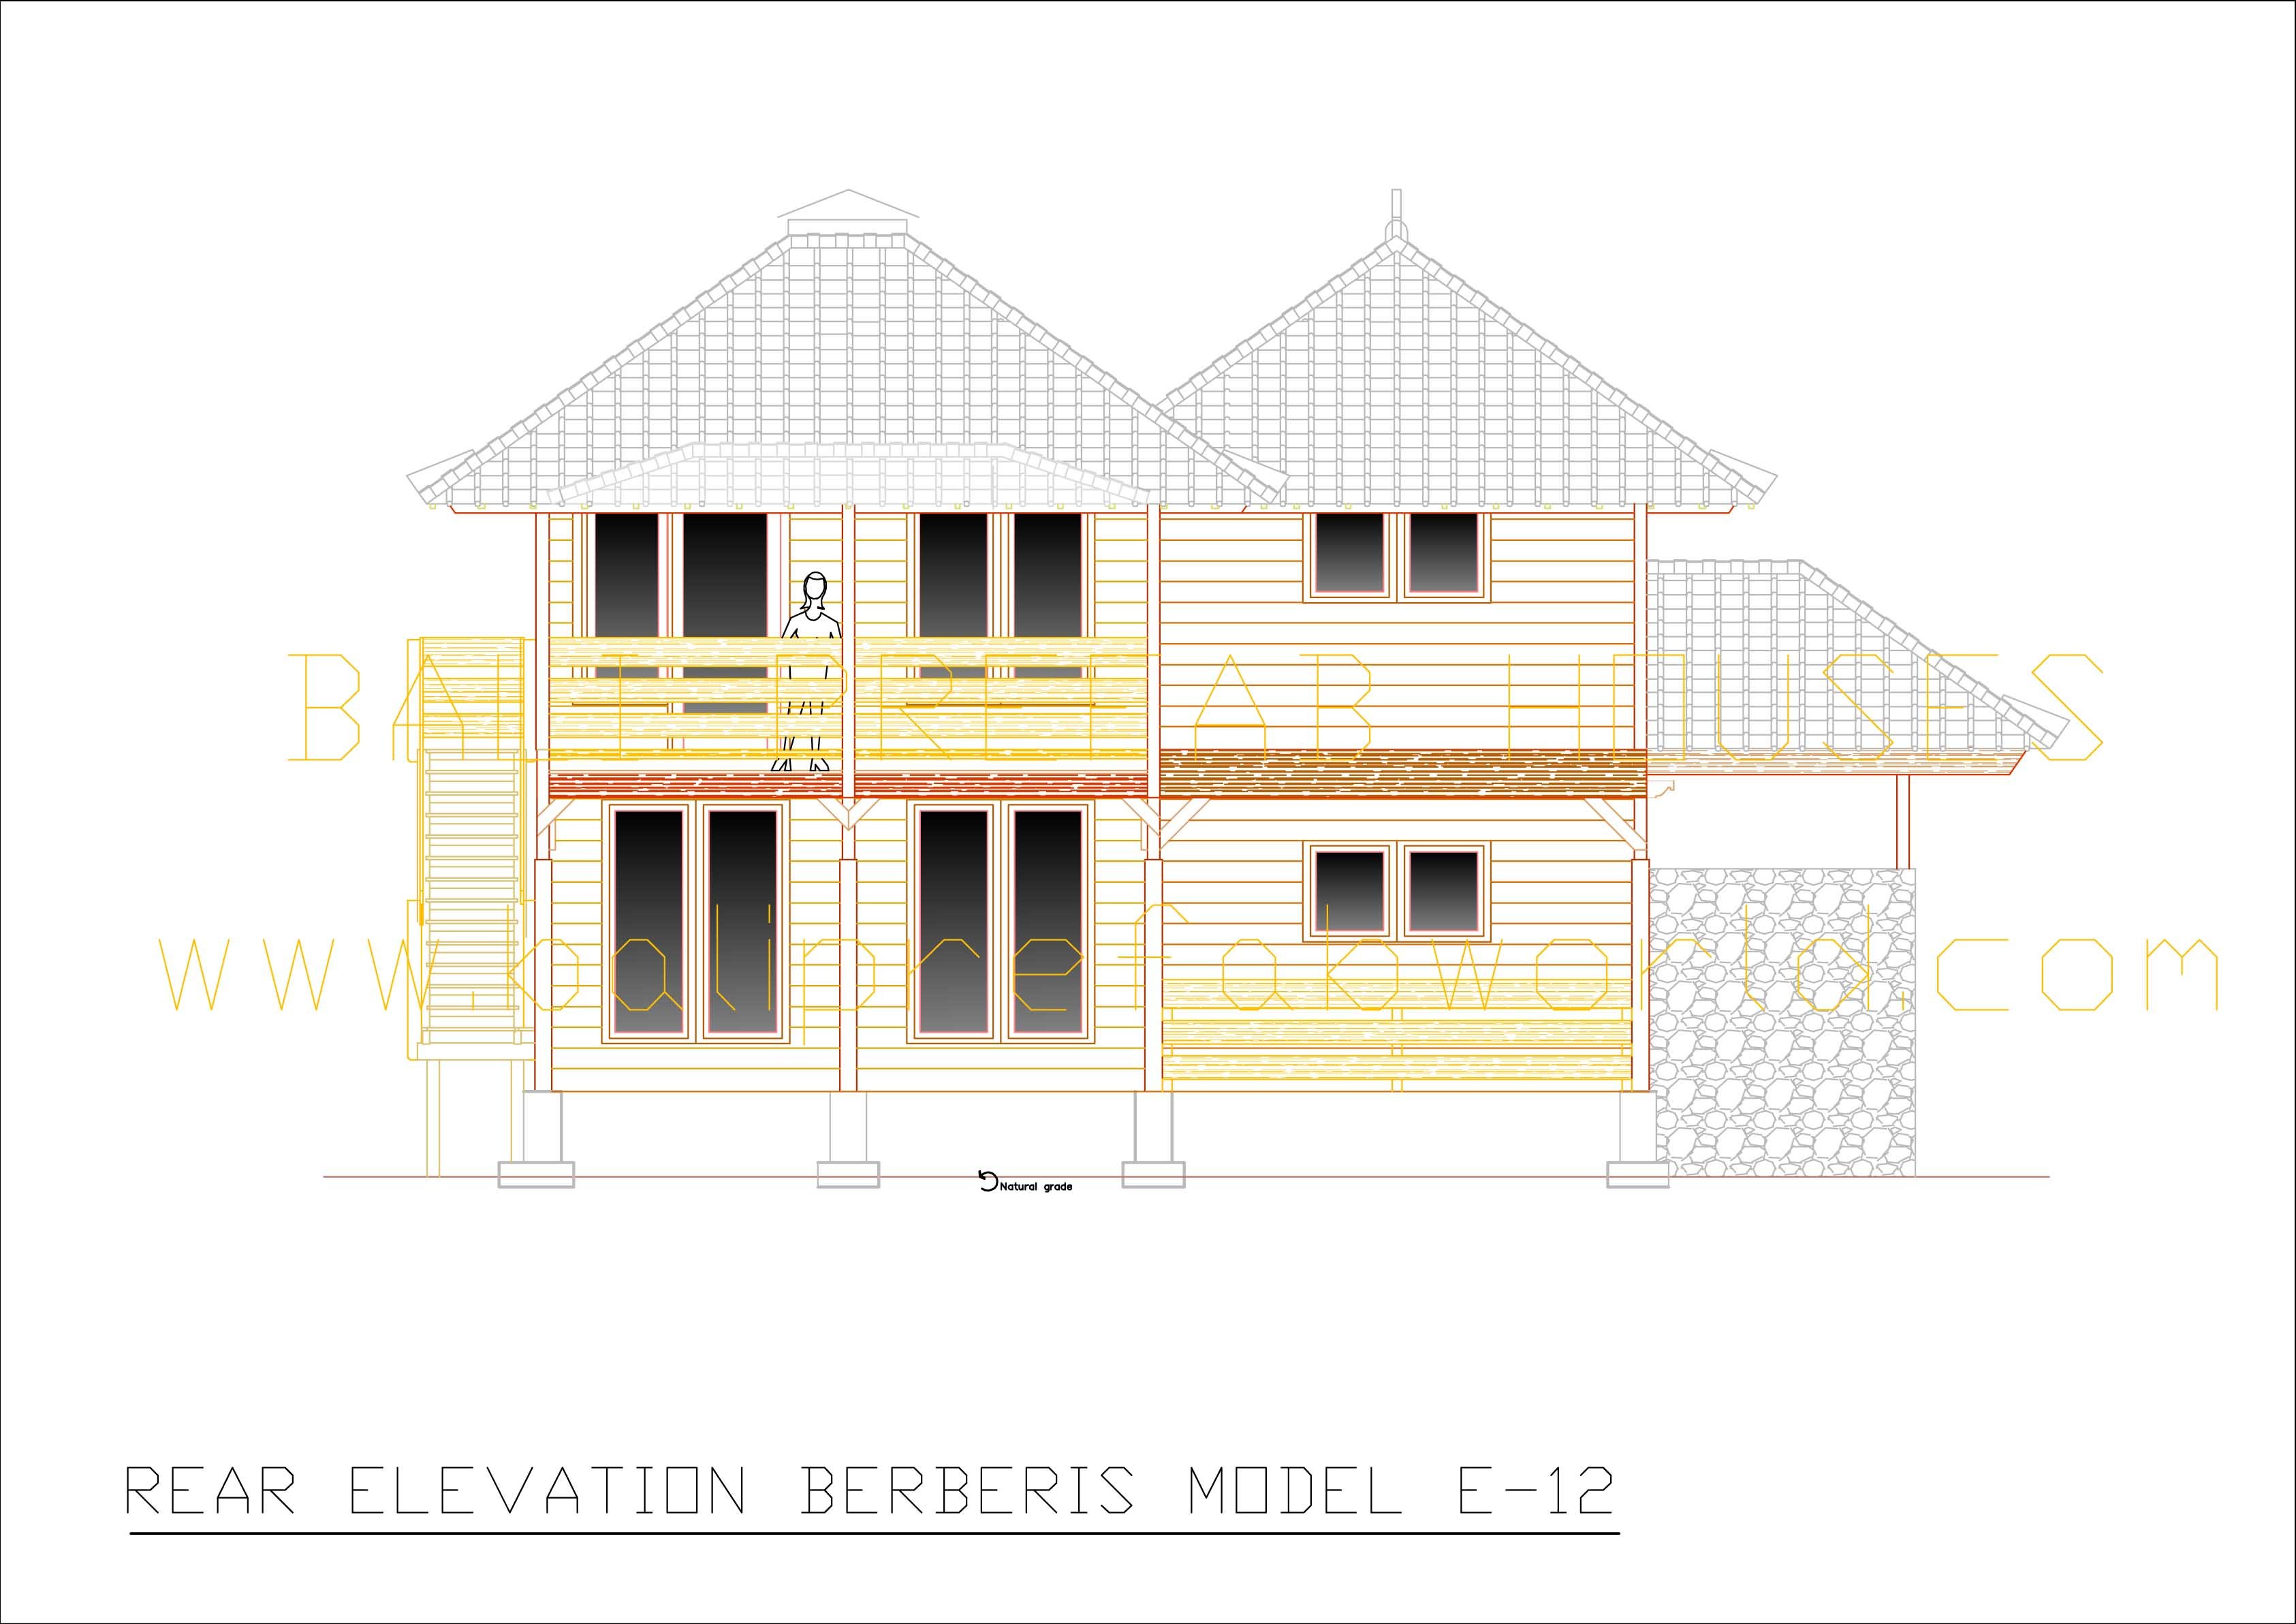 Berberis rear elevation